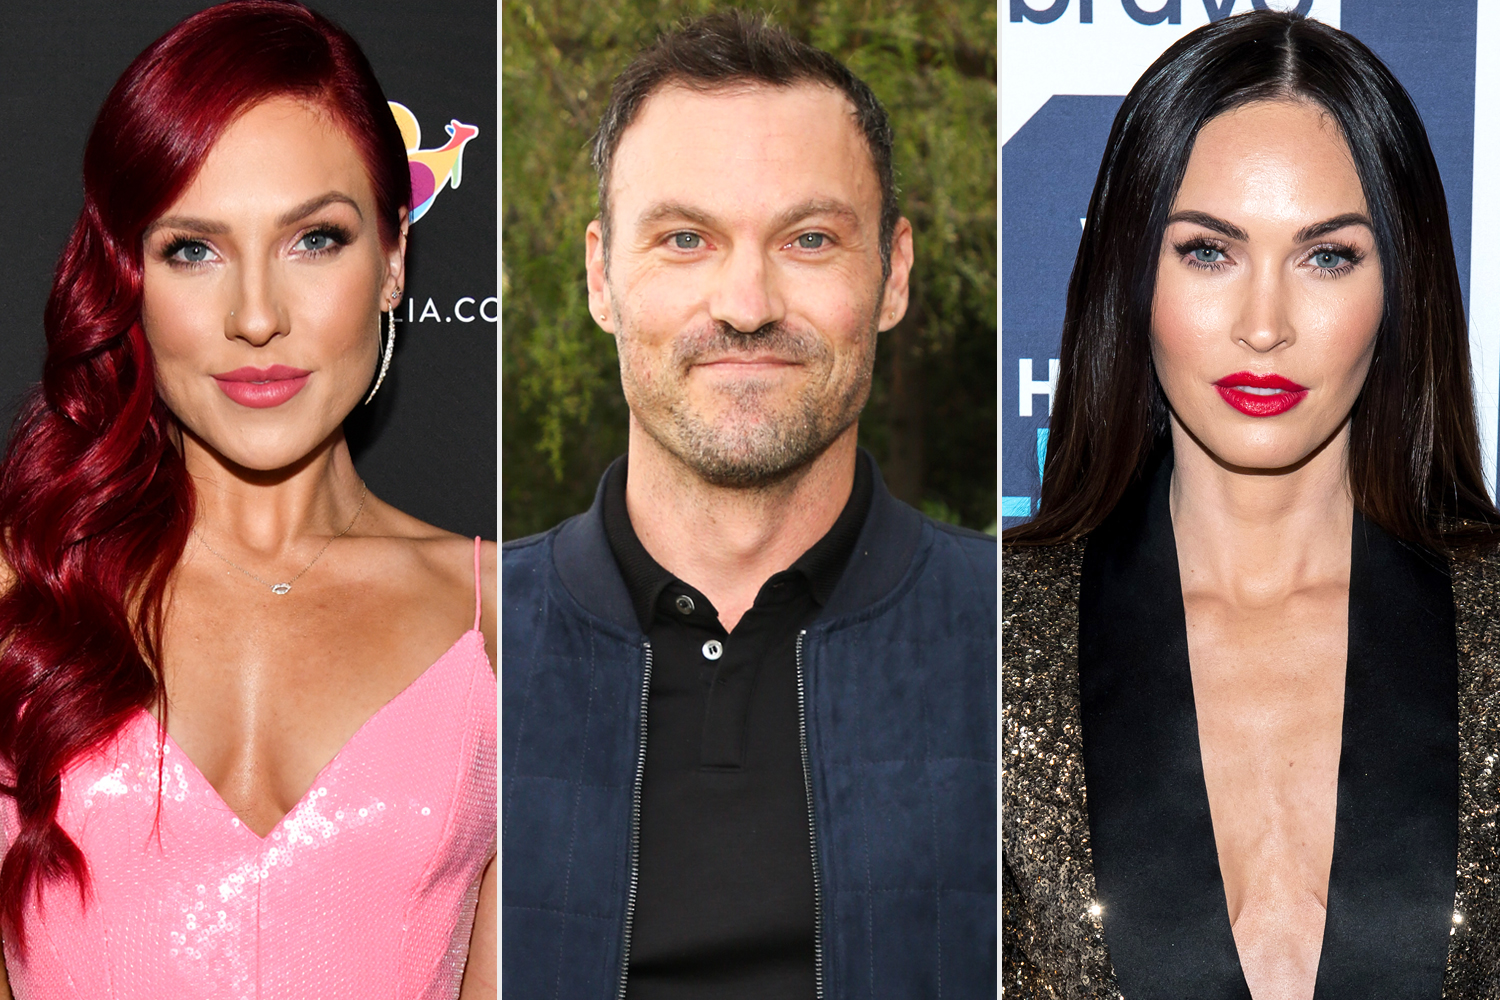 sharna-burgess-has-reportedly-helped-bf-brian-austin-green-and-ex-wife-megan-fox-improve-their-relationship-details